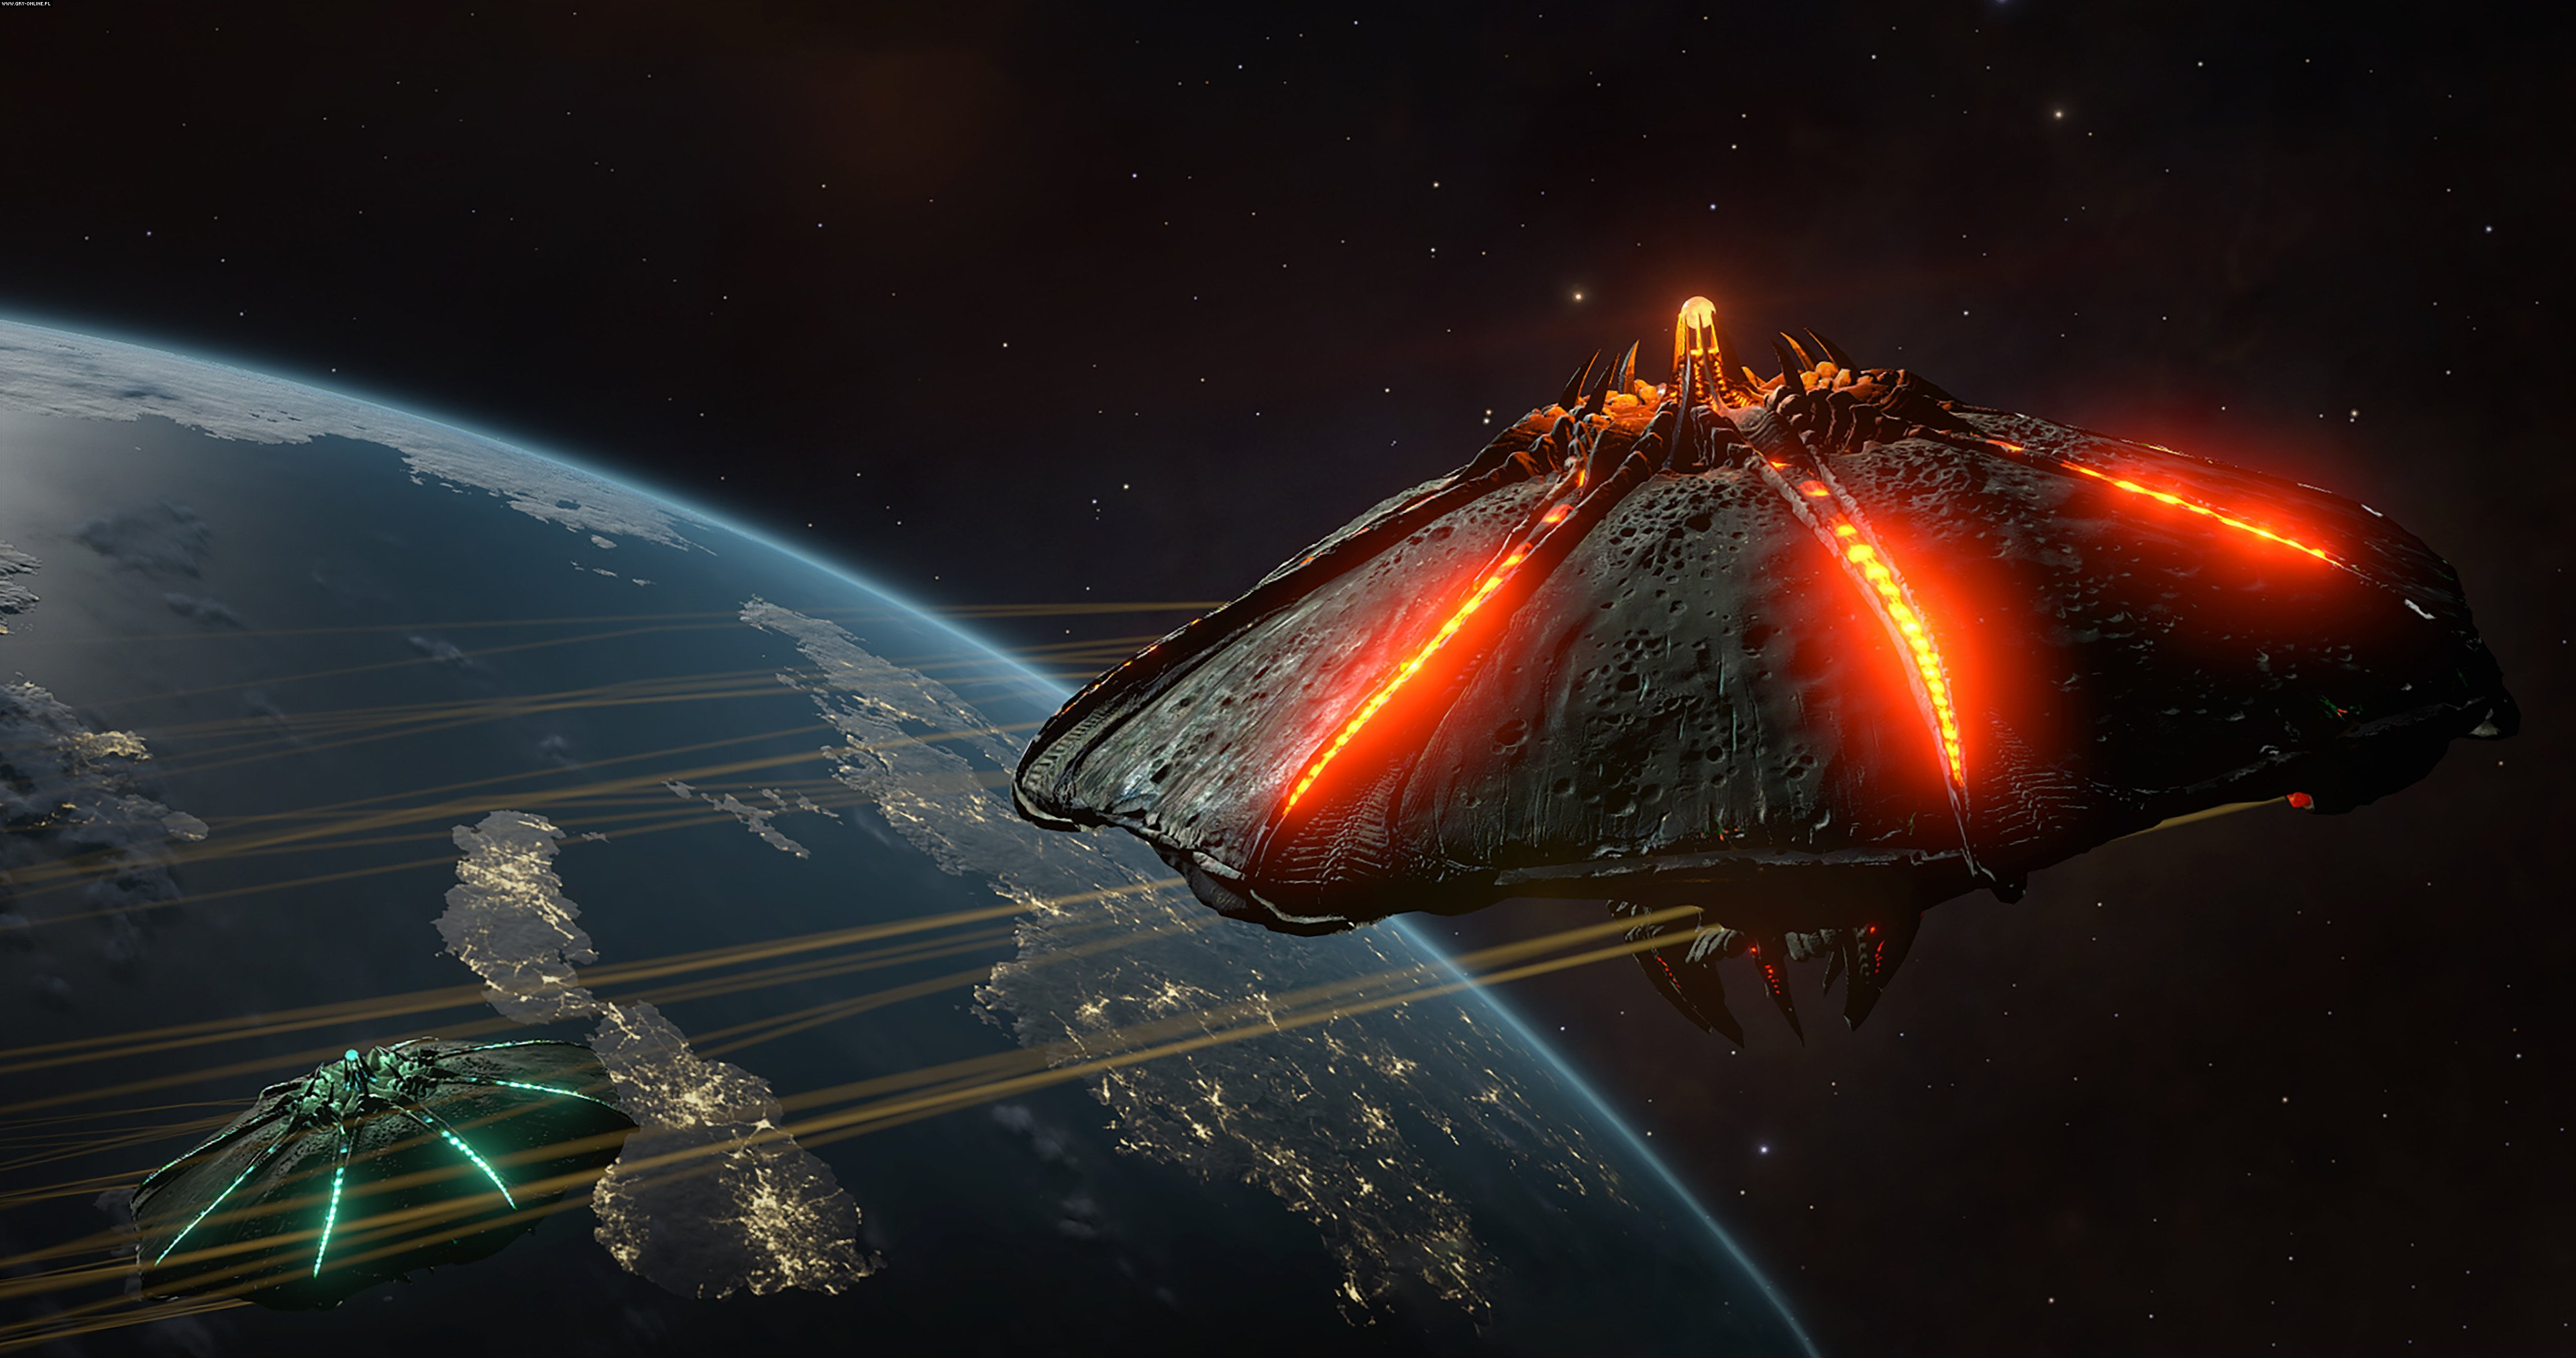 Elite: Dangerous PC, PS4, XONE Gry Screen 9/140, Frontier Developments/Chris Sawyer, Frontier Developments